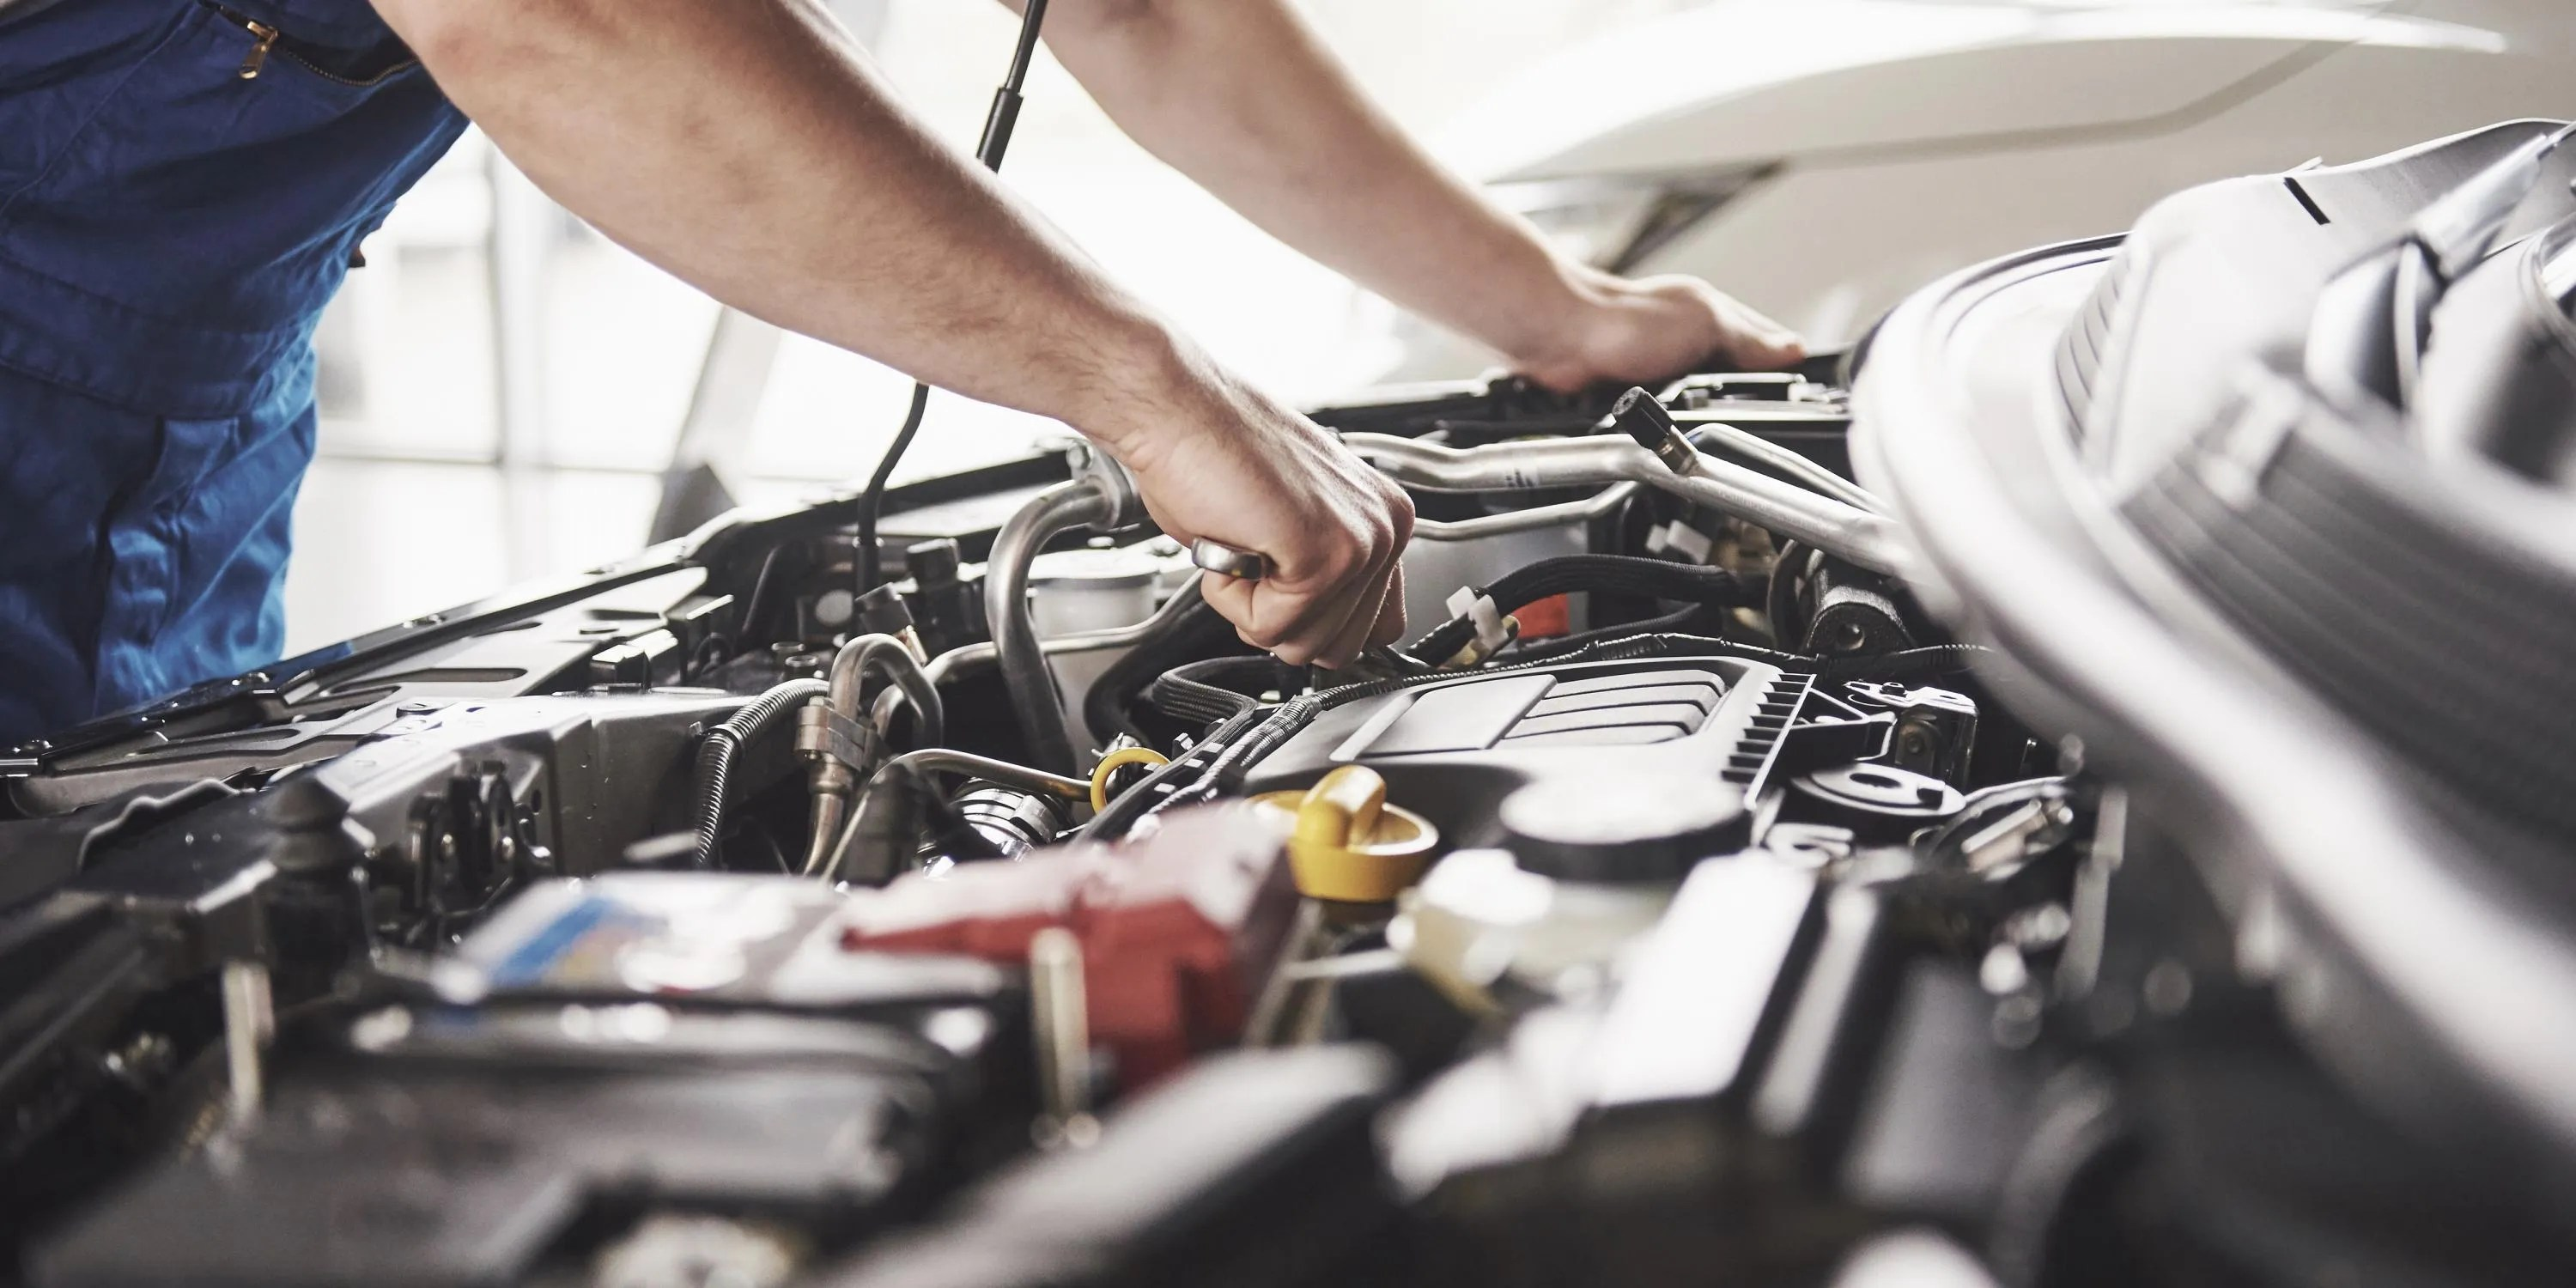 9 Routine Car Check Ups That Can Help Avoid Costly Repairs